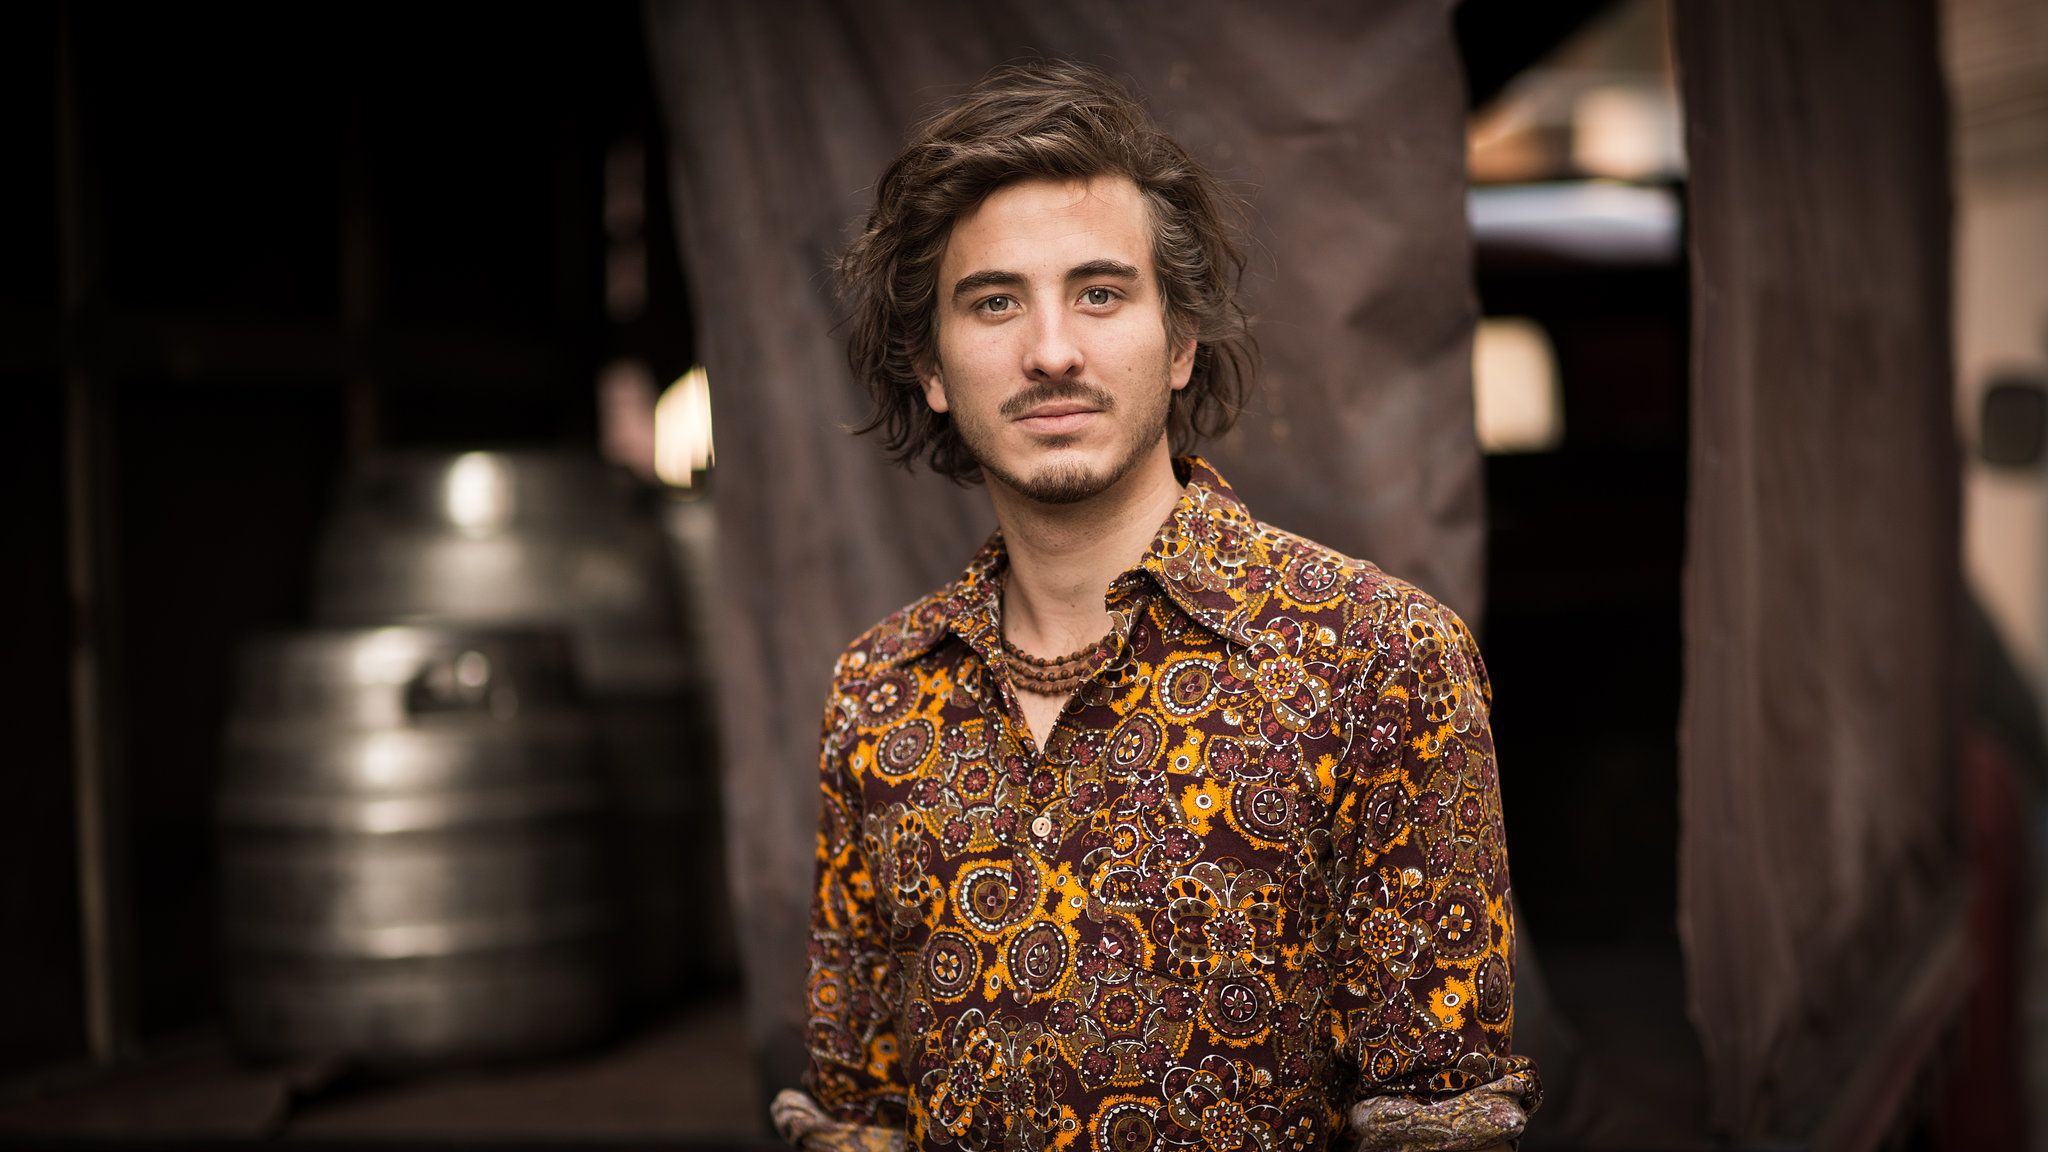 ryan corr girlfriend 2015ryan corr movies, ryan corr filmography, ryan corr instagram, ryan corr craig stott, ryan corr wikipedia, ryan corr, ryan corr twitter, ryan corr facebook, ryan corr girlfriend, ryan corr imdb, ryan corr and dena kaplan, ryan corr girlfriend 2015, ryan corr drugs, ryan corr biography, ryan corr holding the man, ryan corr partner, ryan corr banished, ryan corr interview, ryan corr new movie, ryan corr imogen bailey